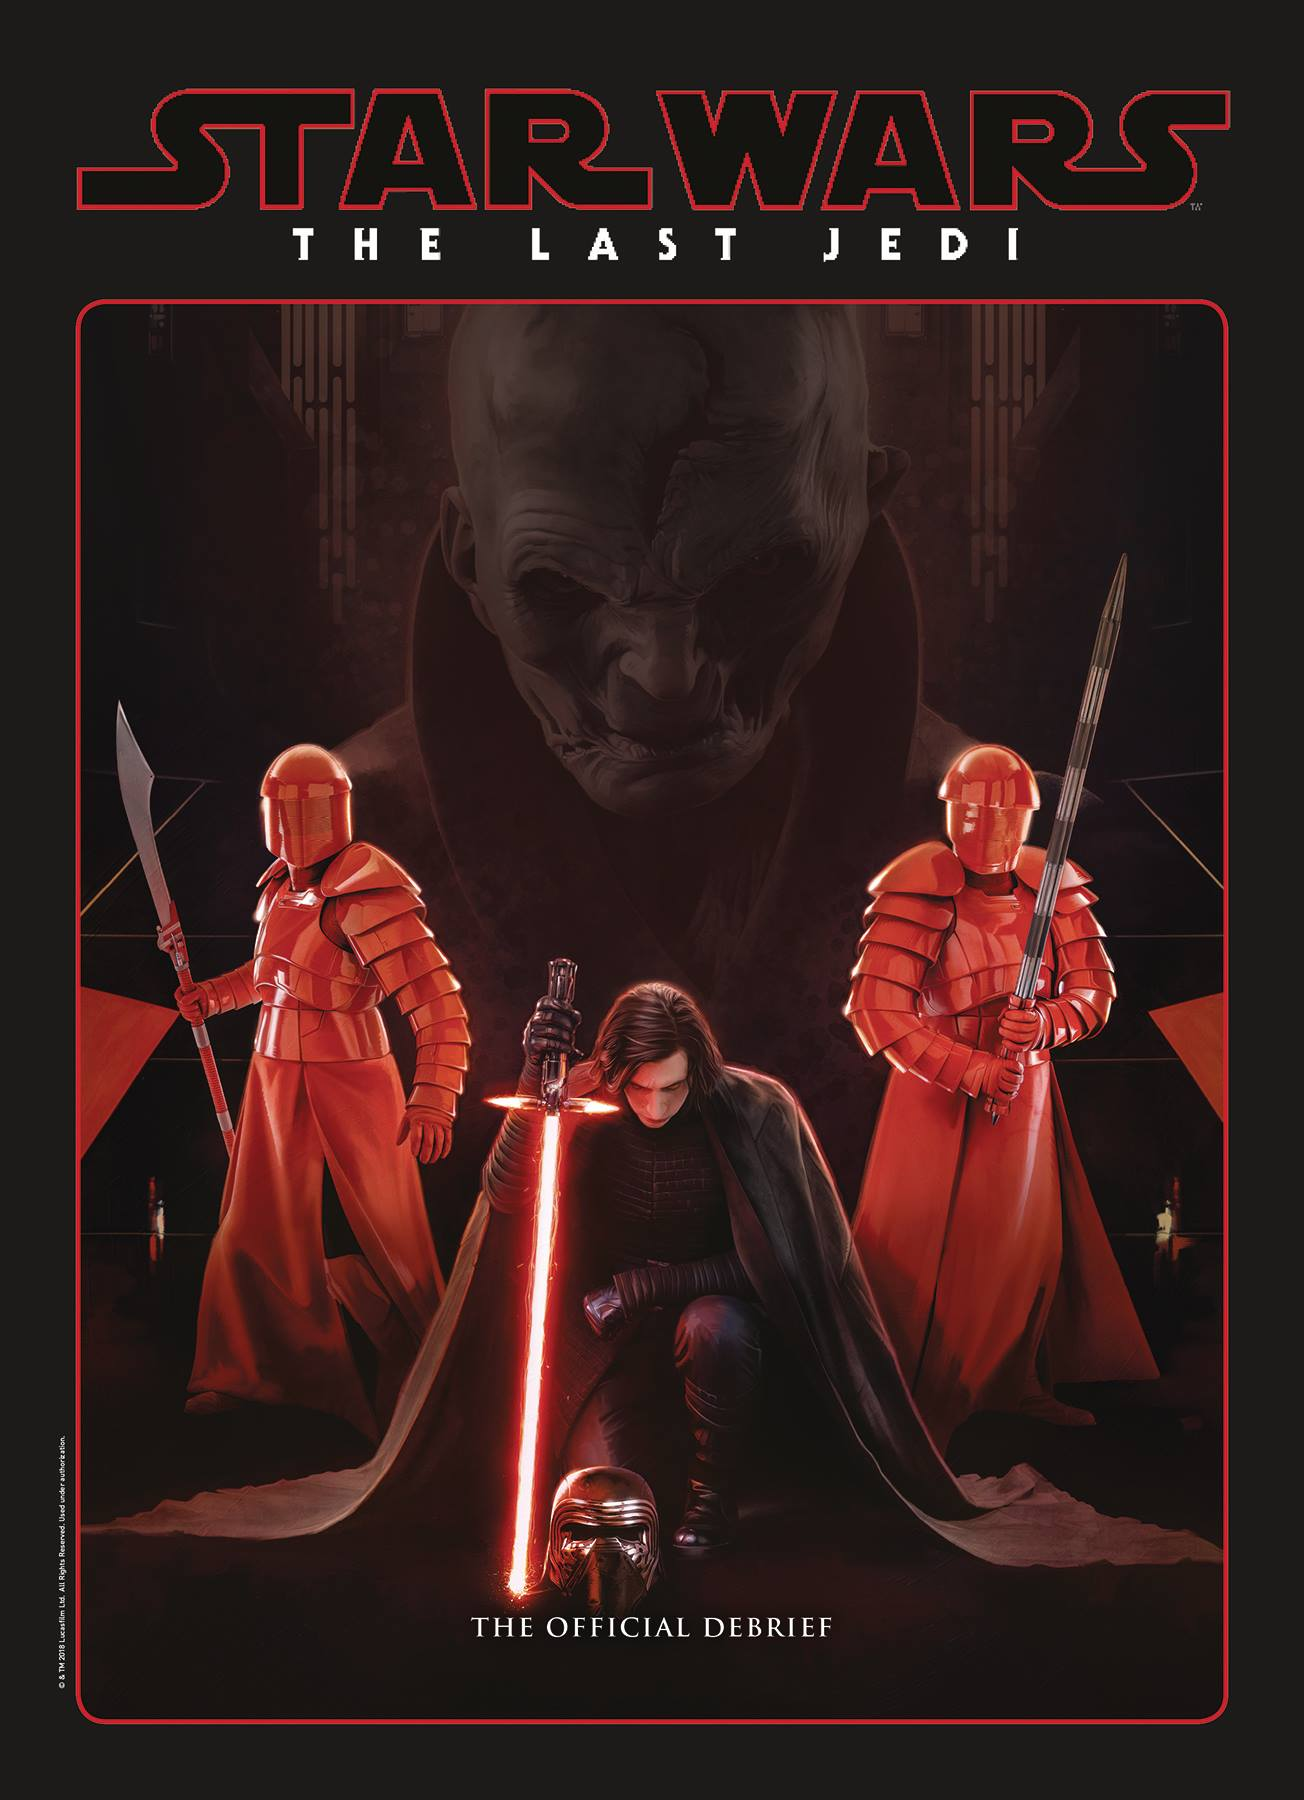 Star Wars The Last Jedi: The Official Movie Companion